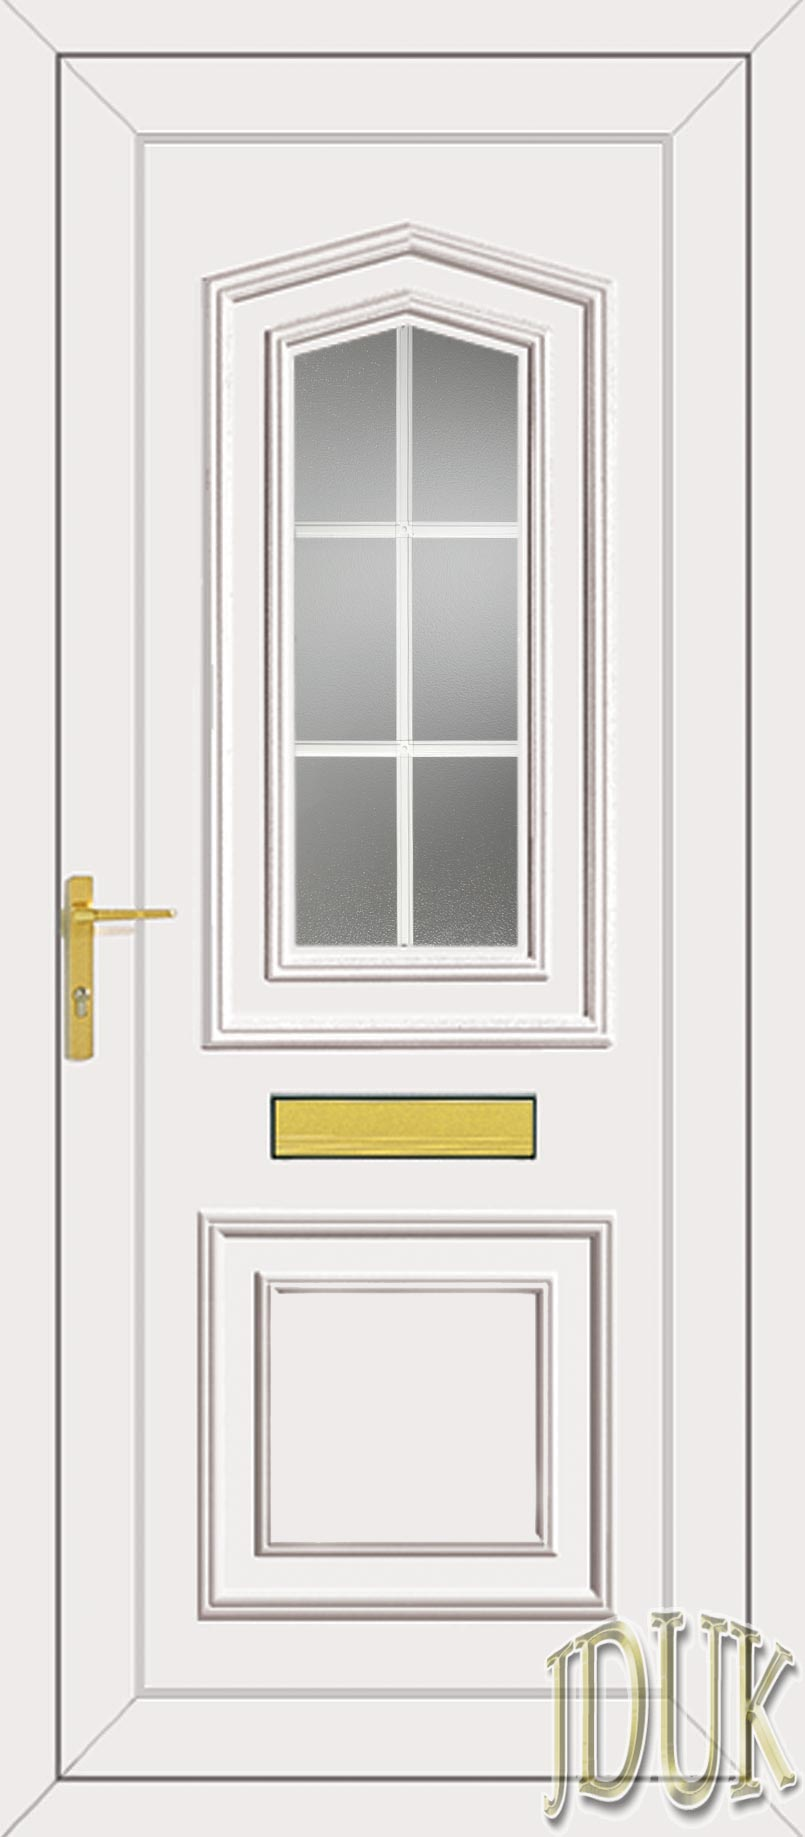 Johnson one georgian bar upvc front door for Upvc front doors